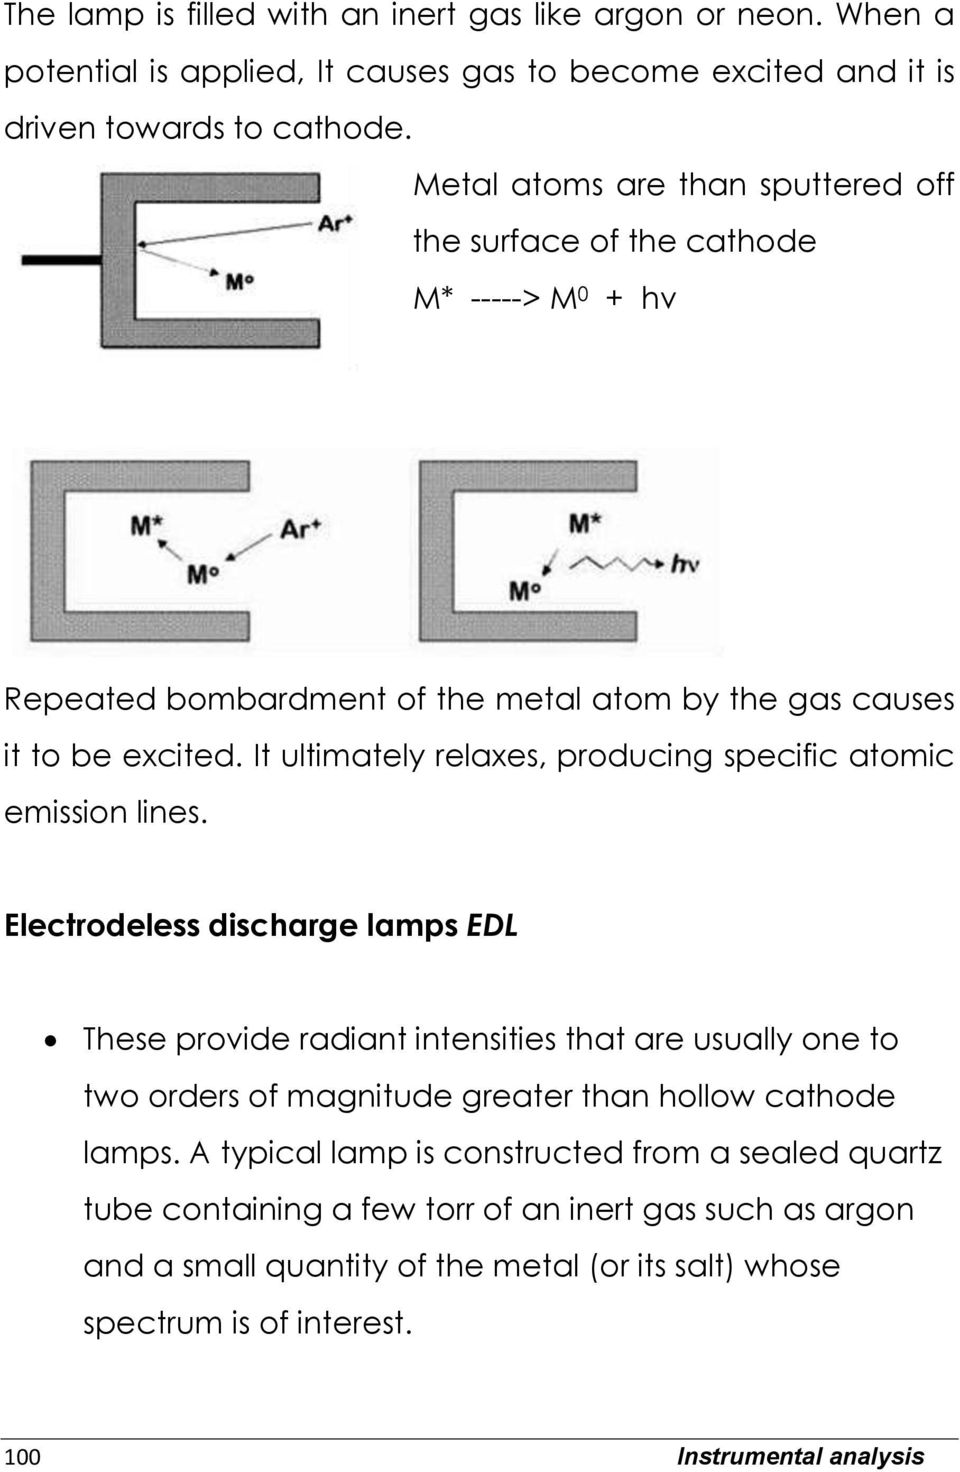 hight resolution of it ultimately relaxes producing specific atomic emission lines